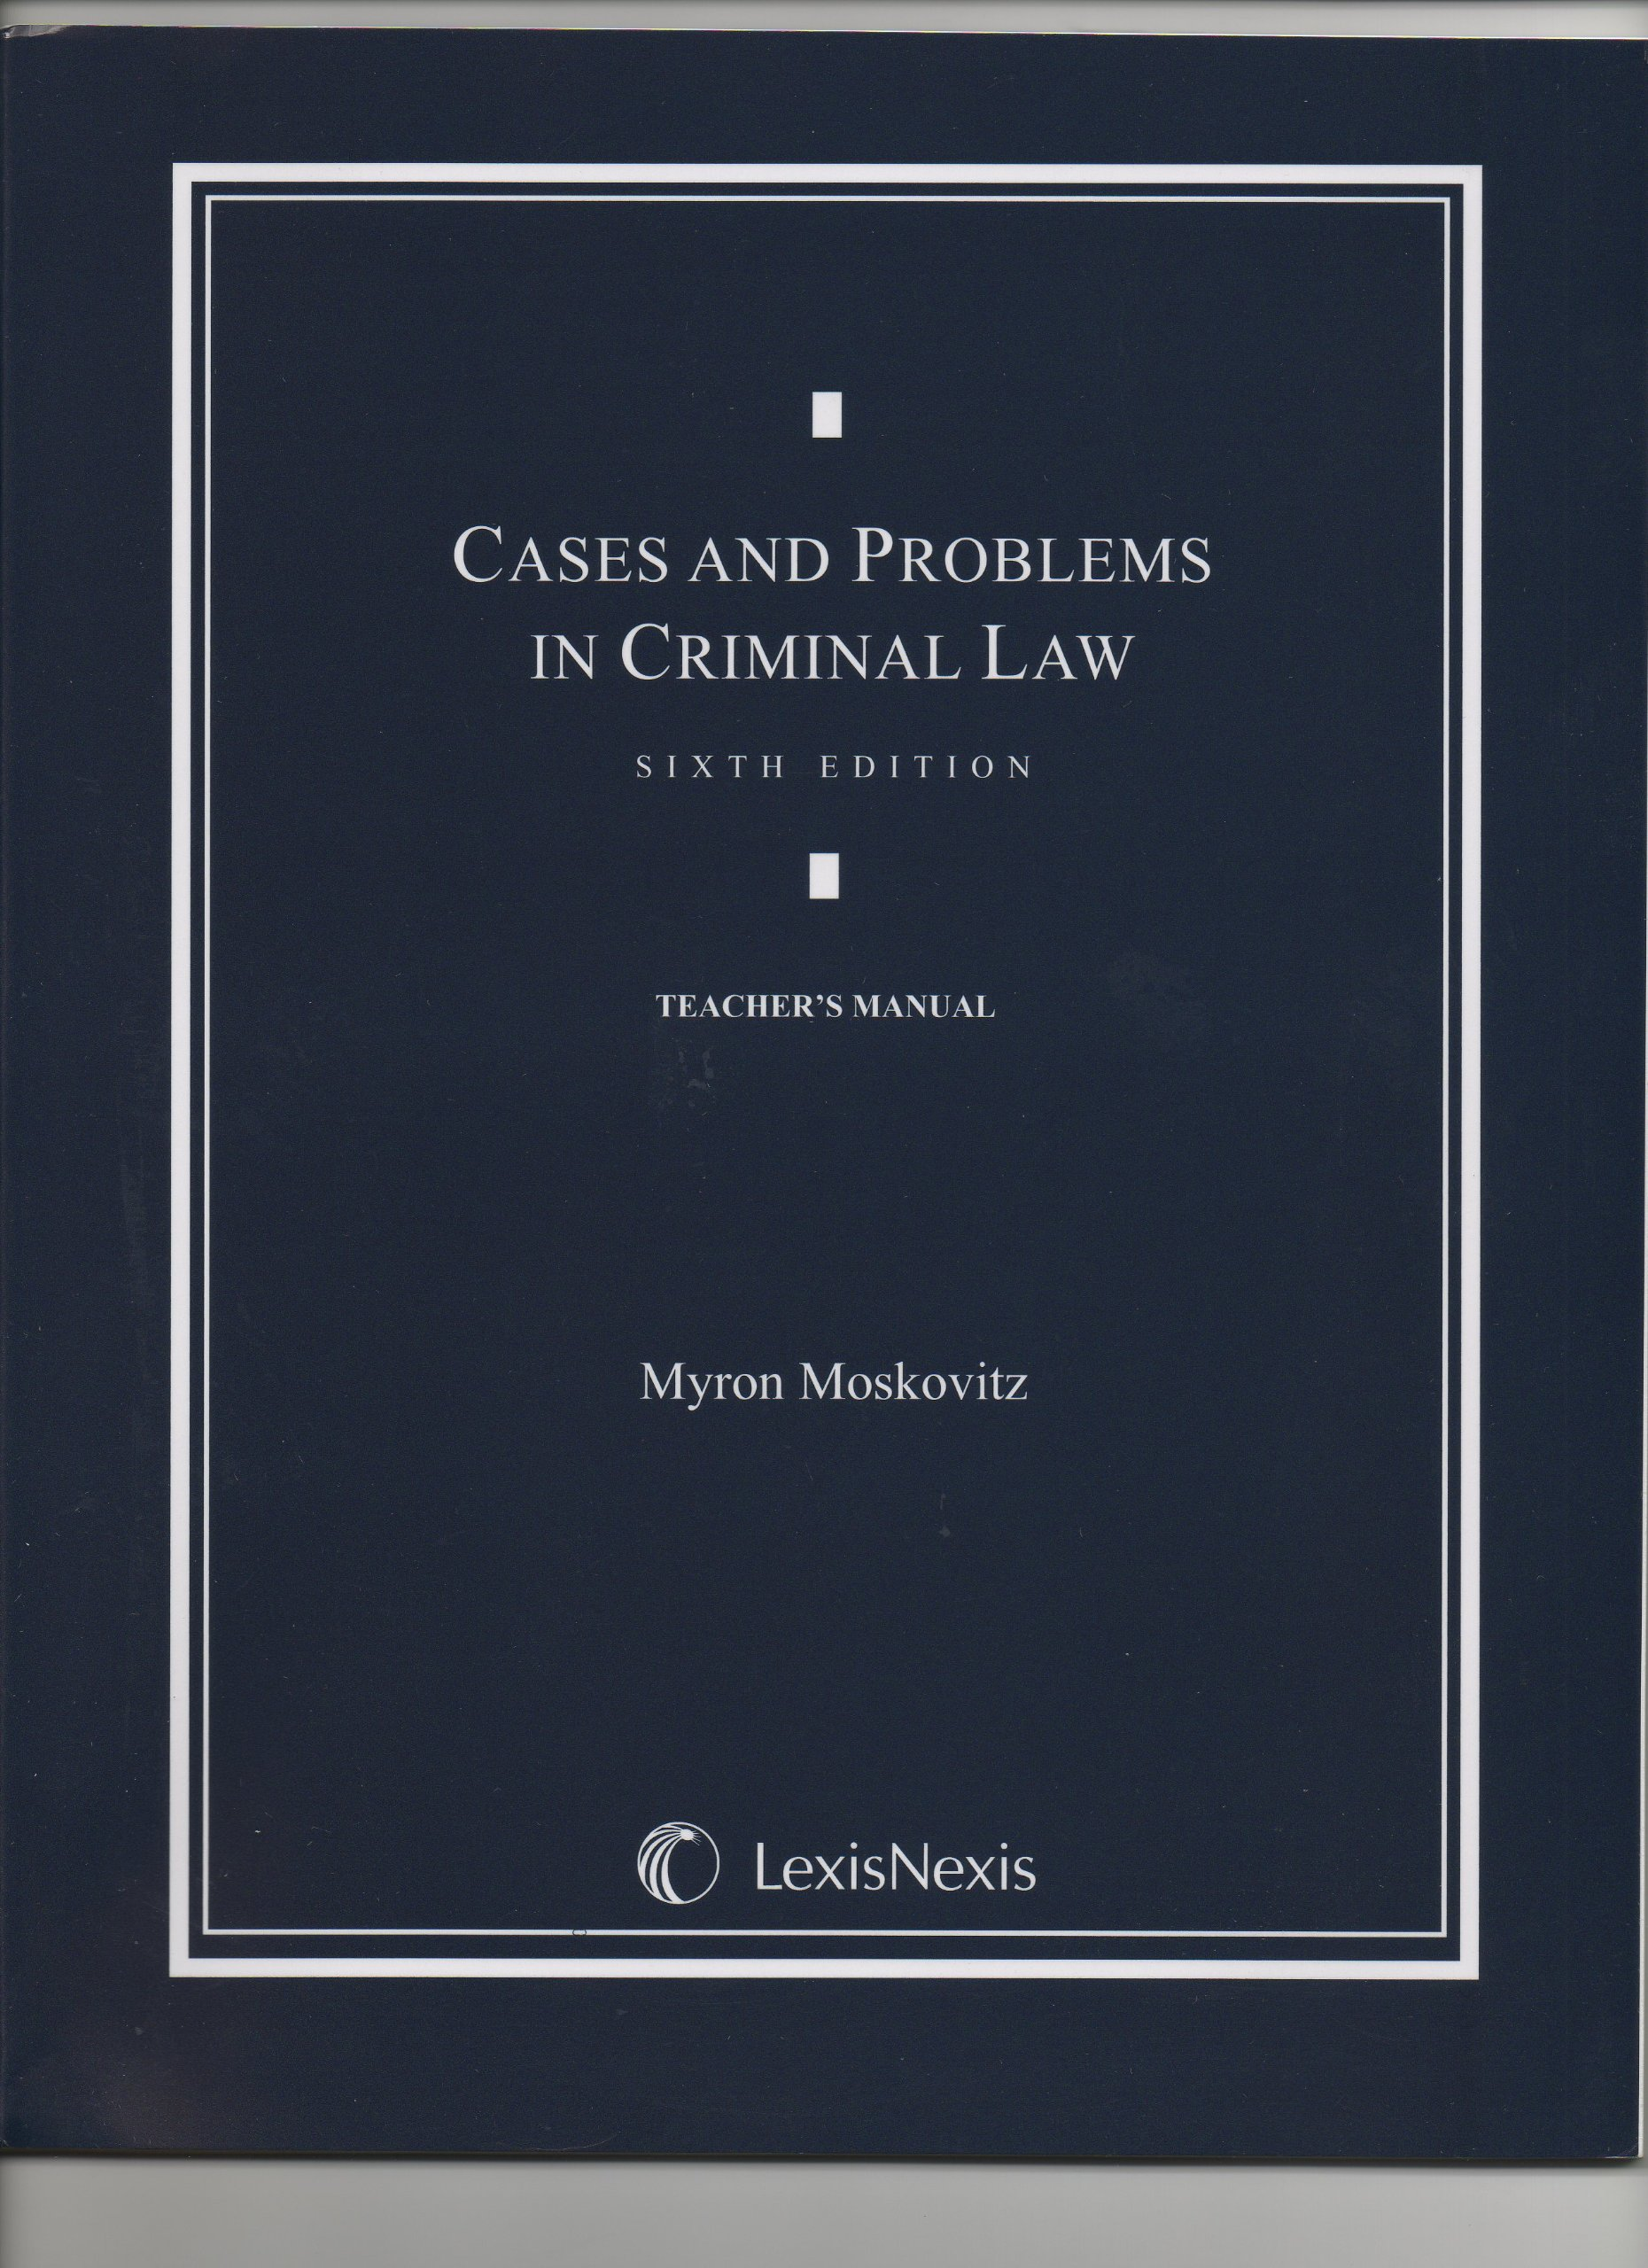 Teacher's Manual to Cases and Problems in Criminal Law, 6th Edition ebook